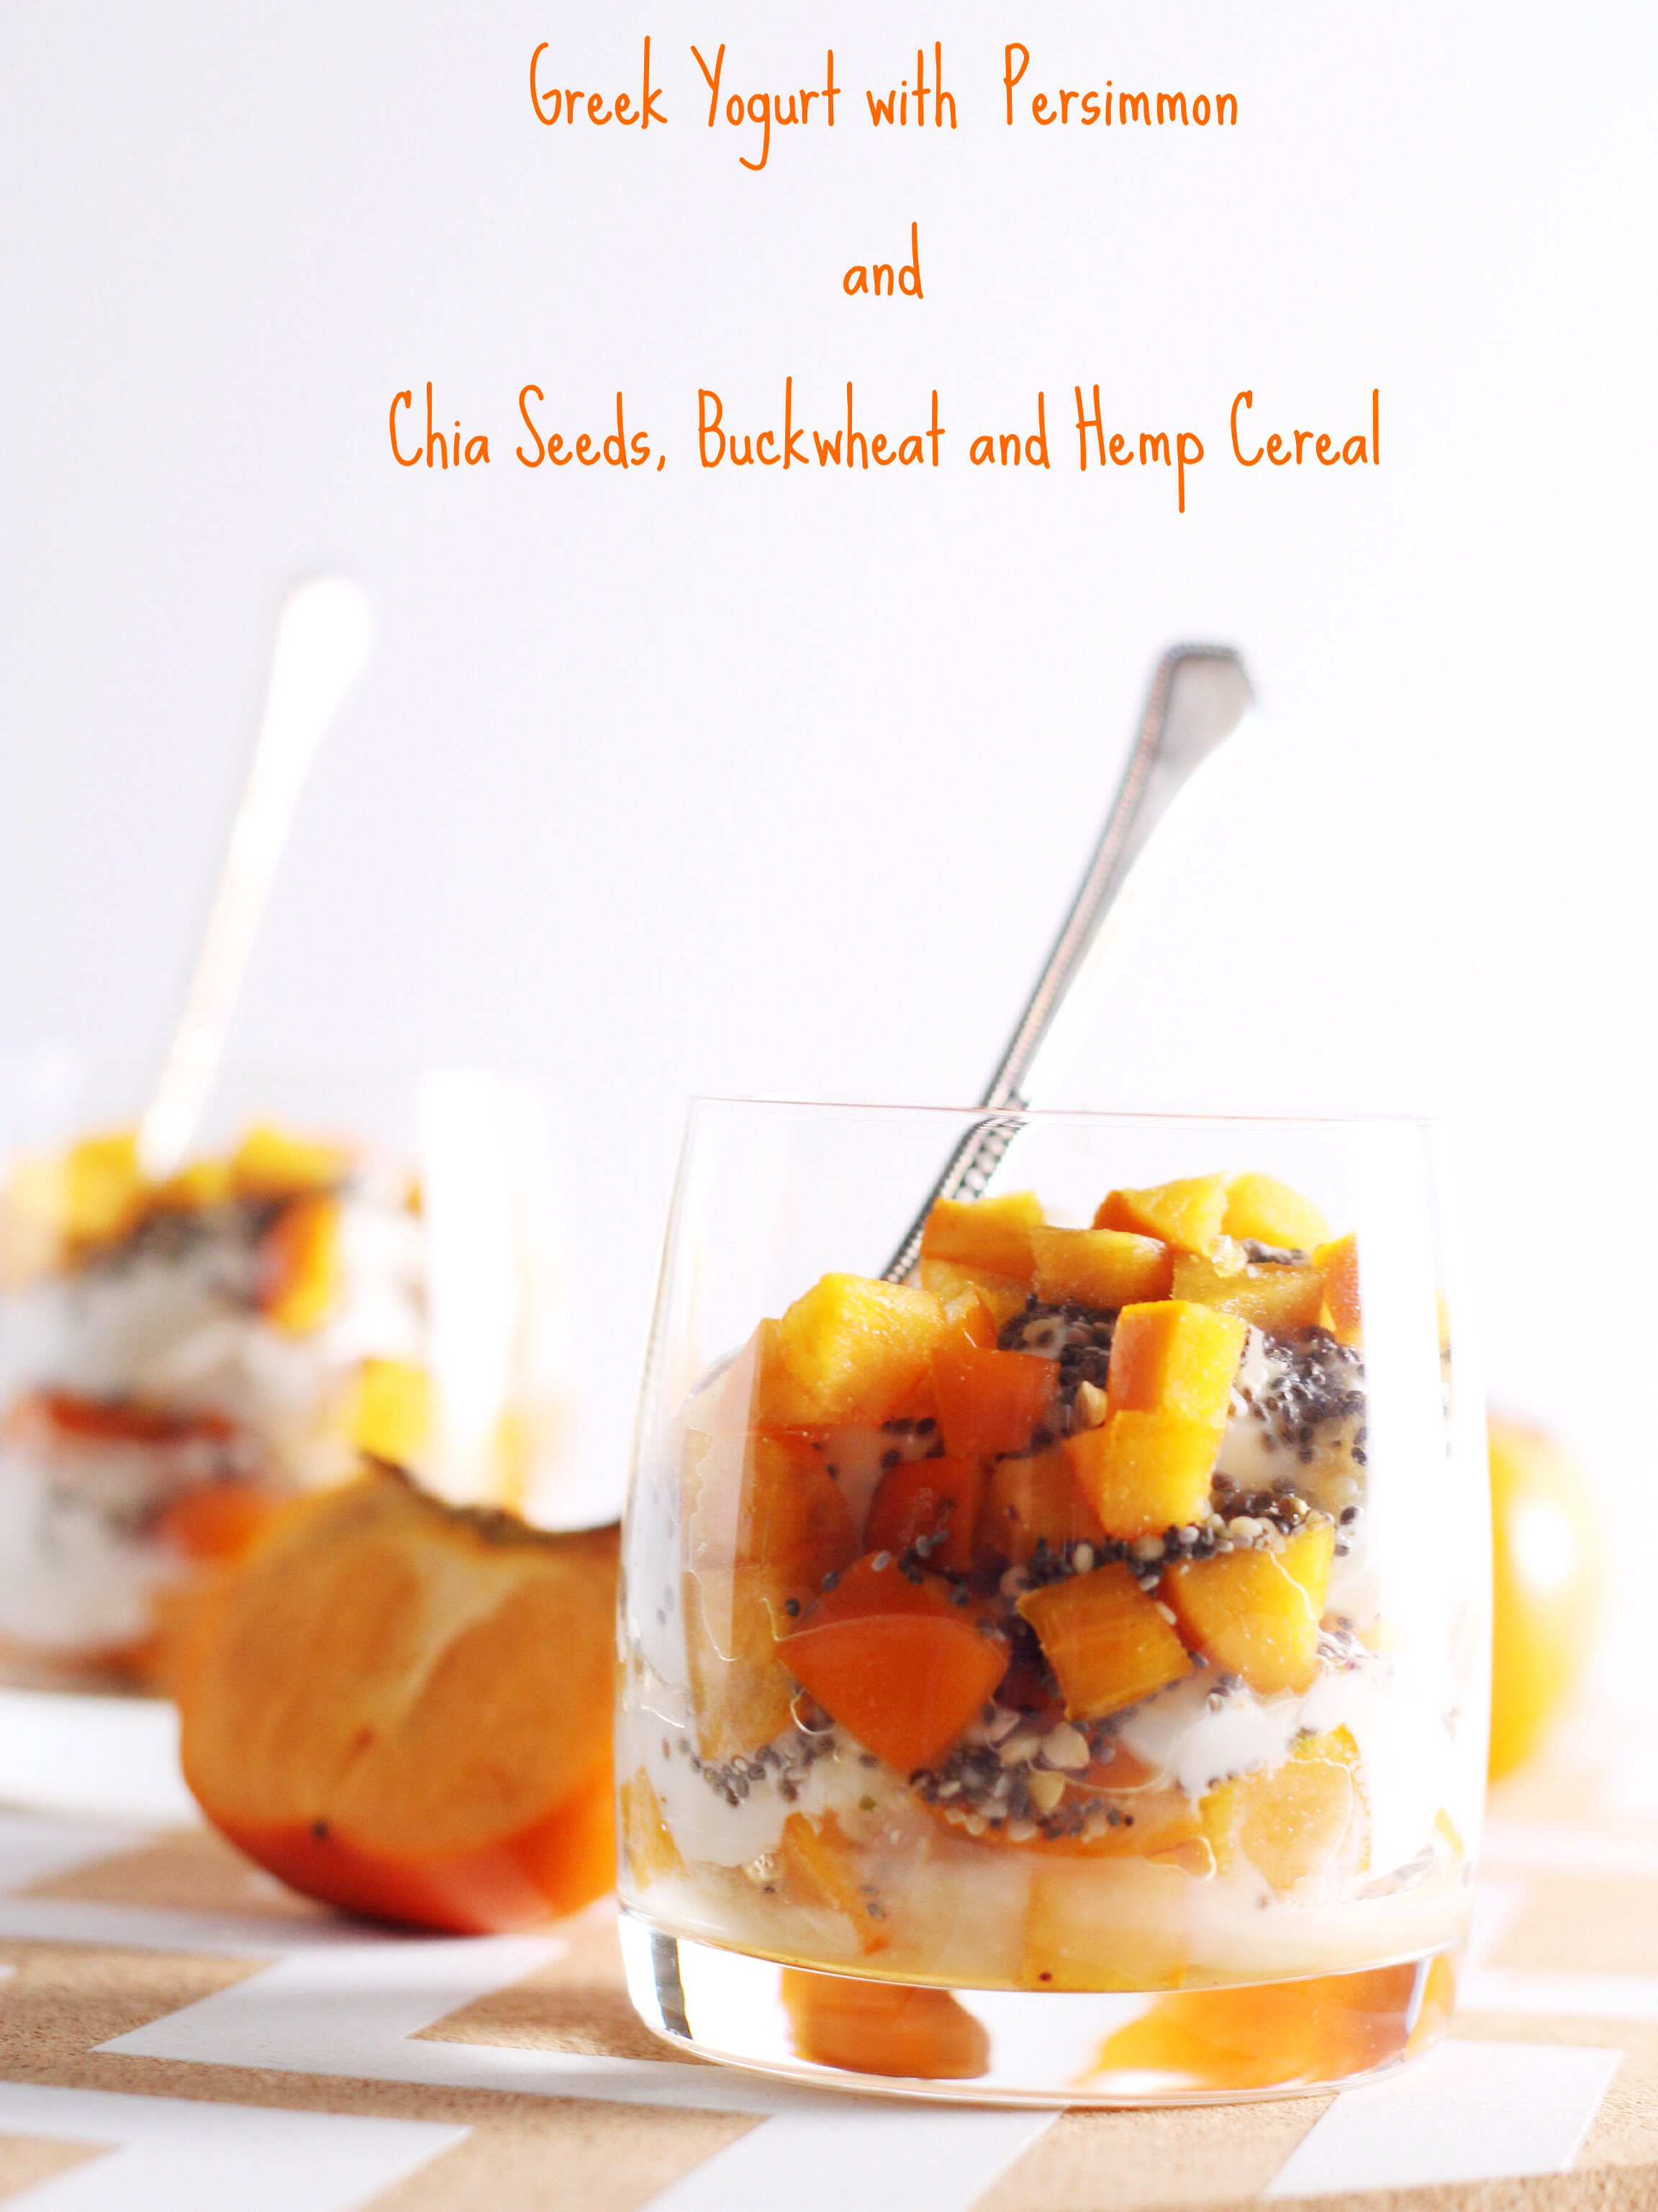 Greek Yogurt with Persimmon and Chia Seeds, Buckwheat and Hemp Cereal